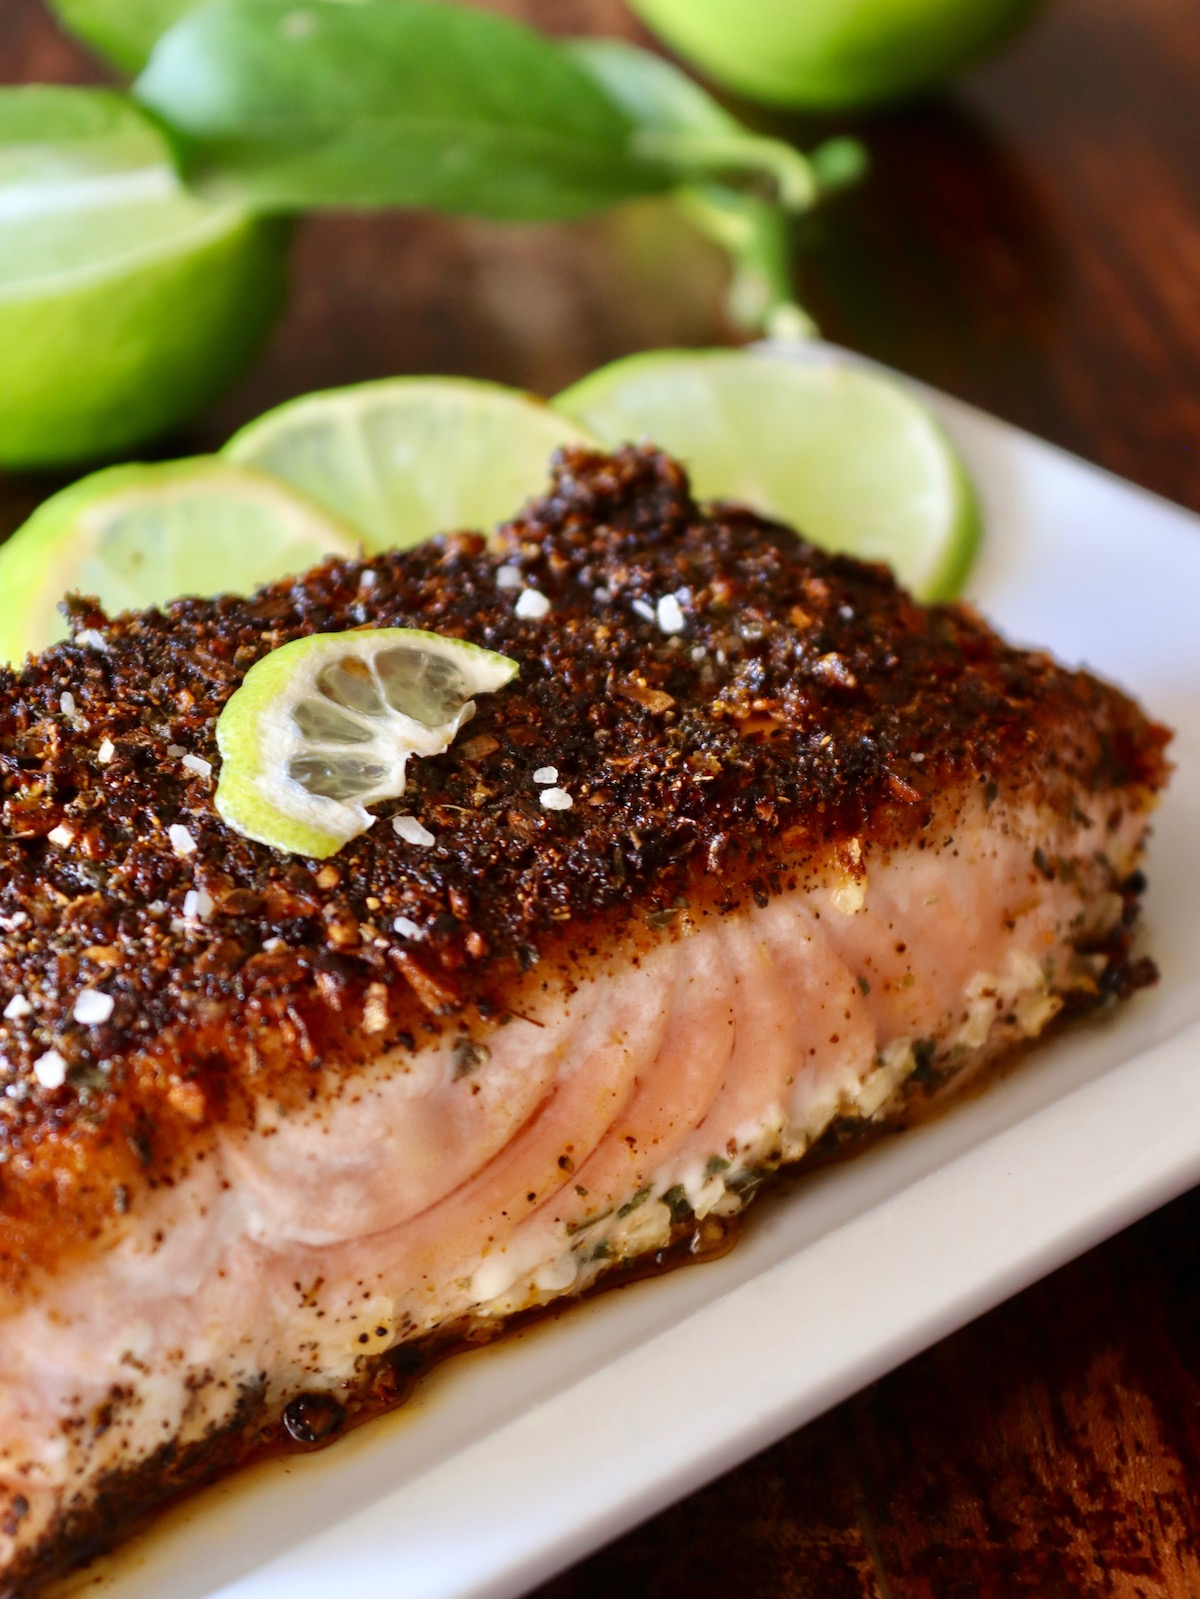 On a light wooden table, a top view of one fillet of 5-Minute Mexican Blackened Salmon presented on a narrow white plate with three lime slices on top.